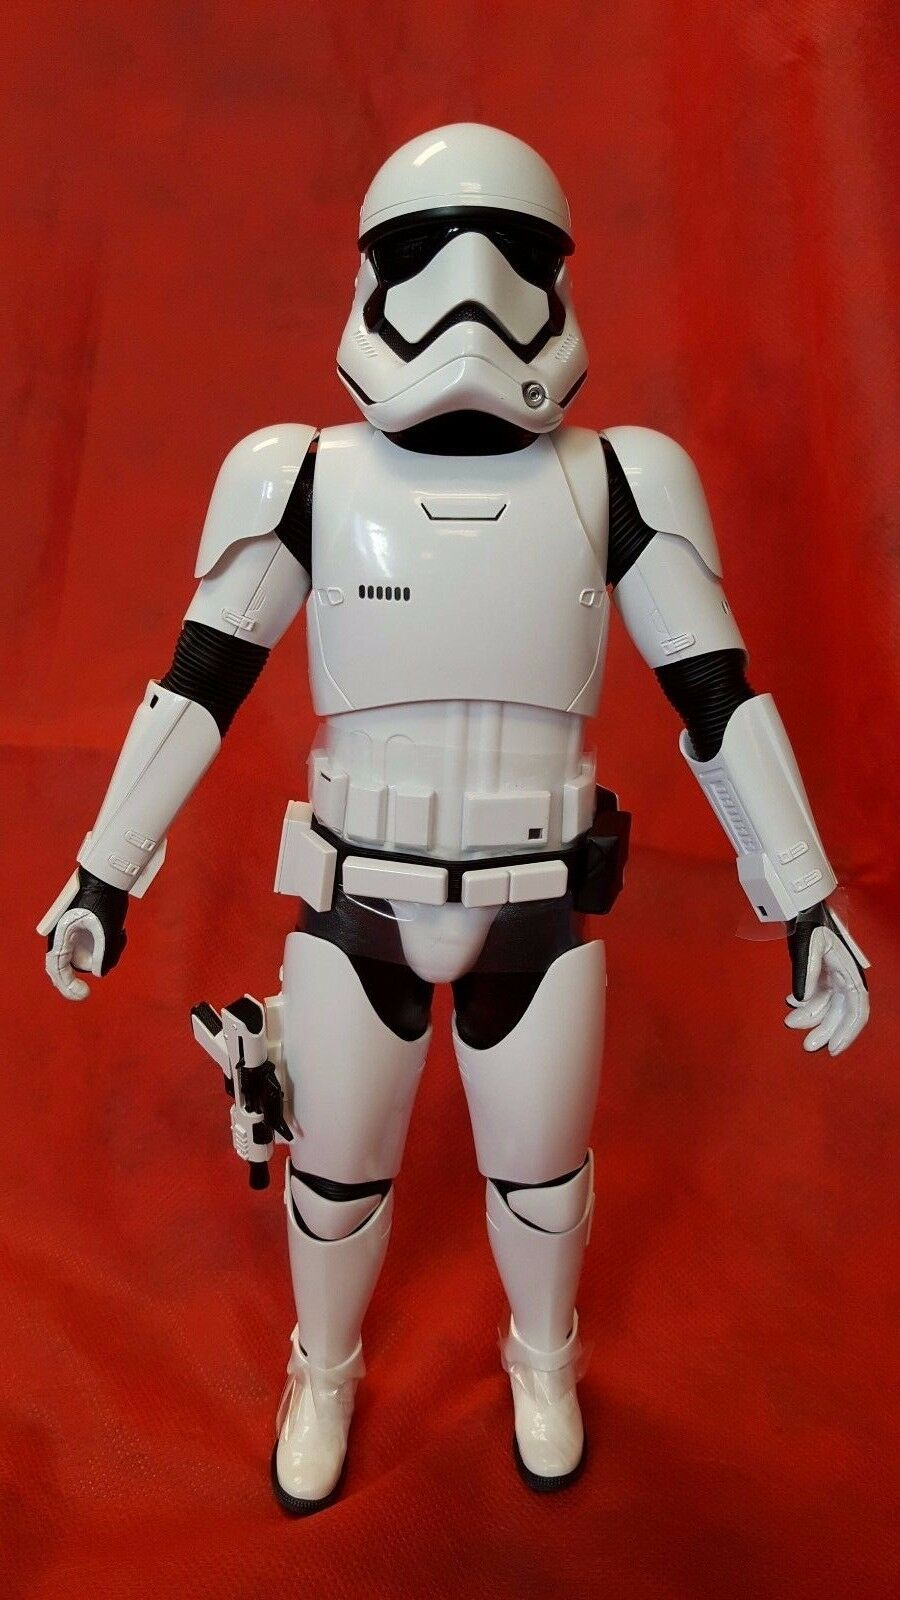 1/6 Hot Toys Star Wars First Order Stormtrooper Figure from Set Loose New